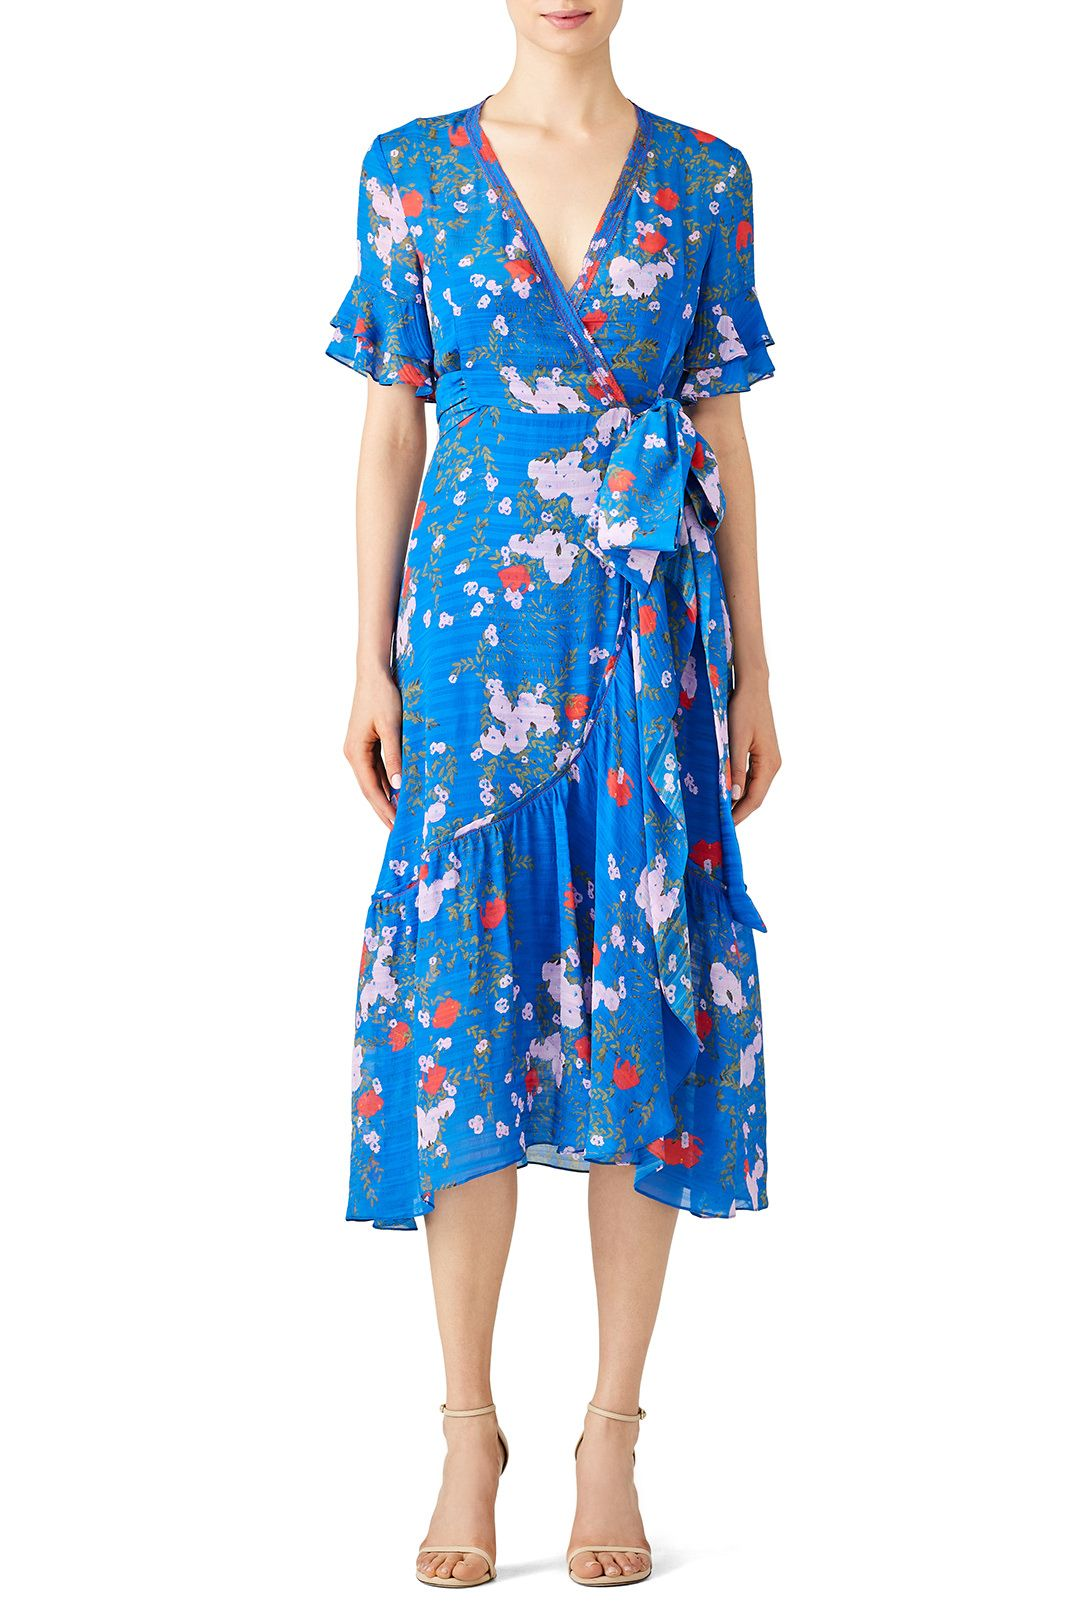 98abdb10146d Rent Floral Blaire Wrap Dress by Tanya Taylor for $80 only at Rent the  Runway.